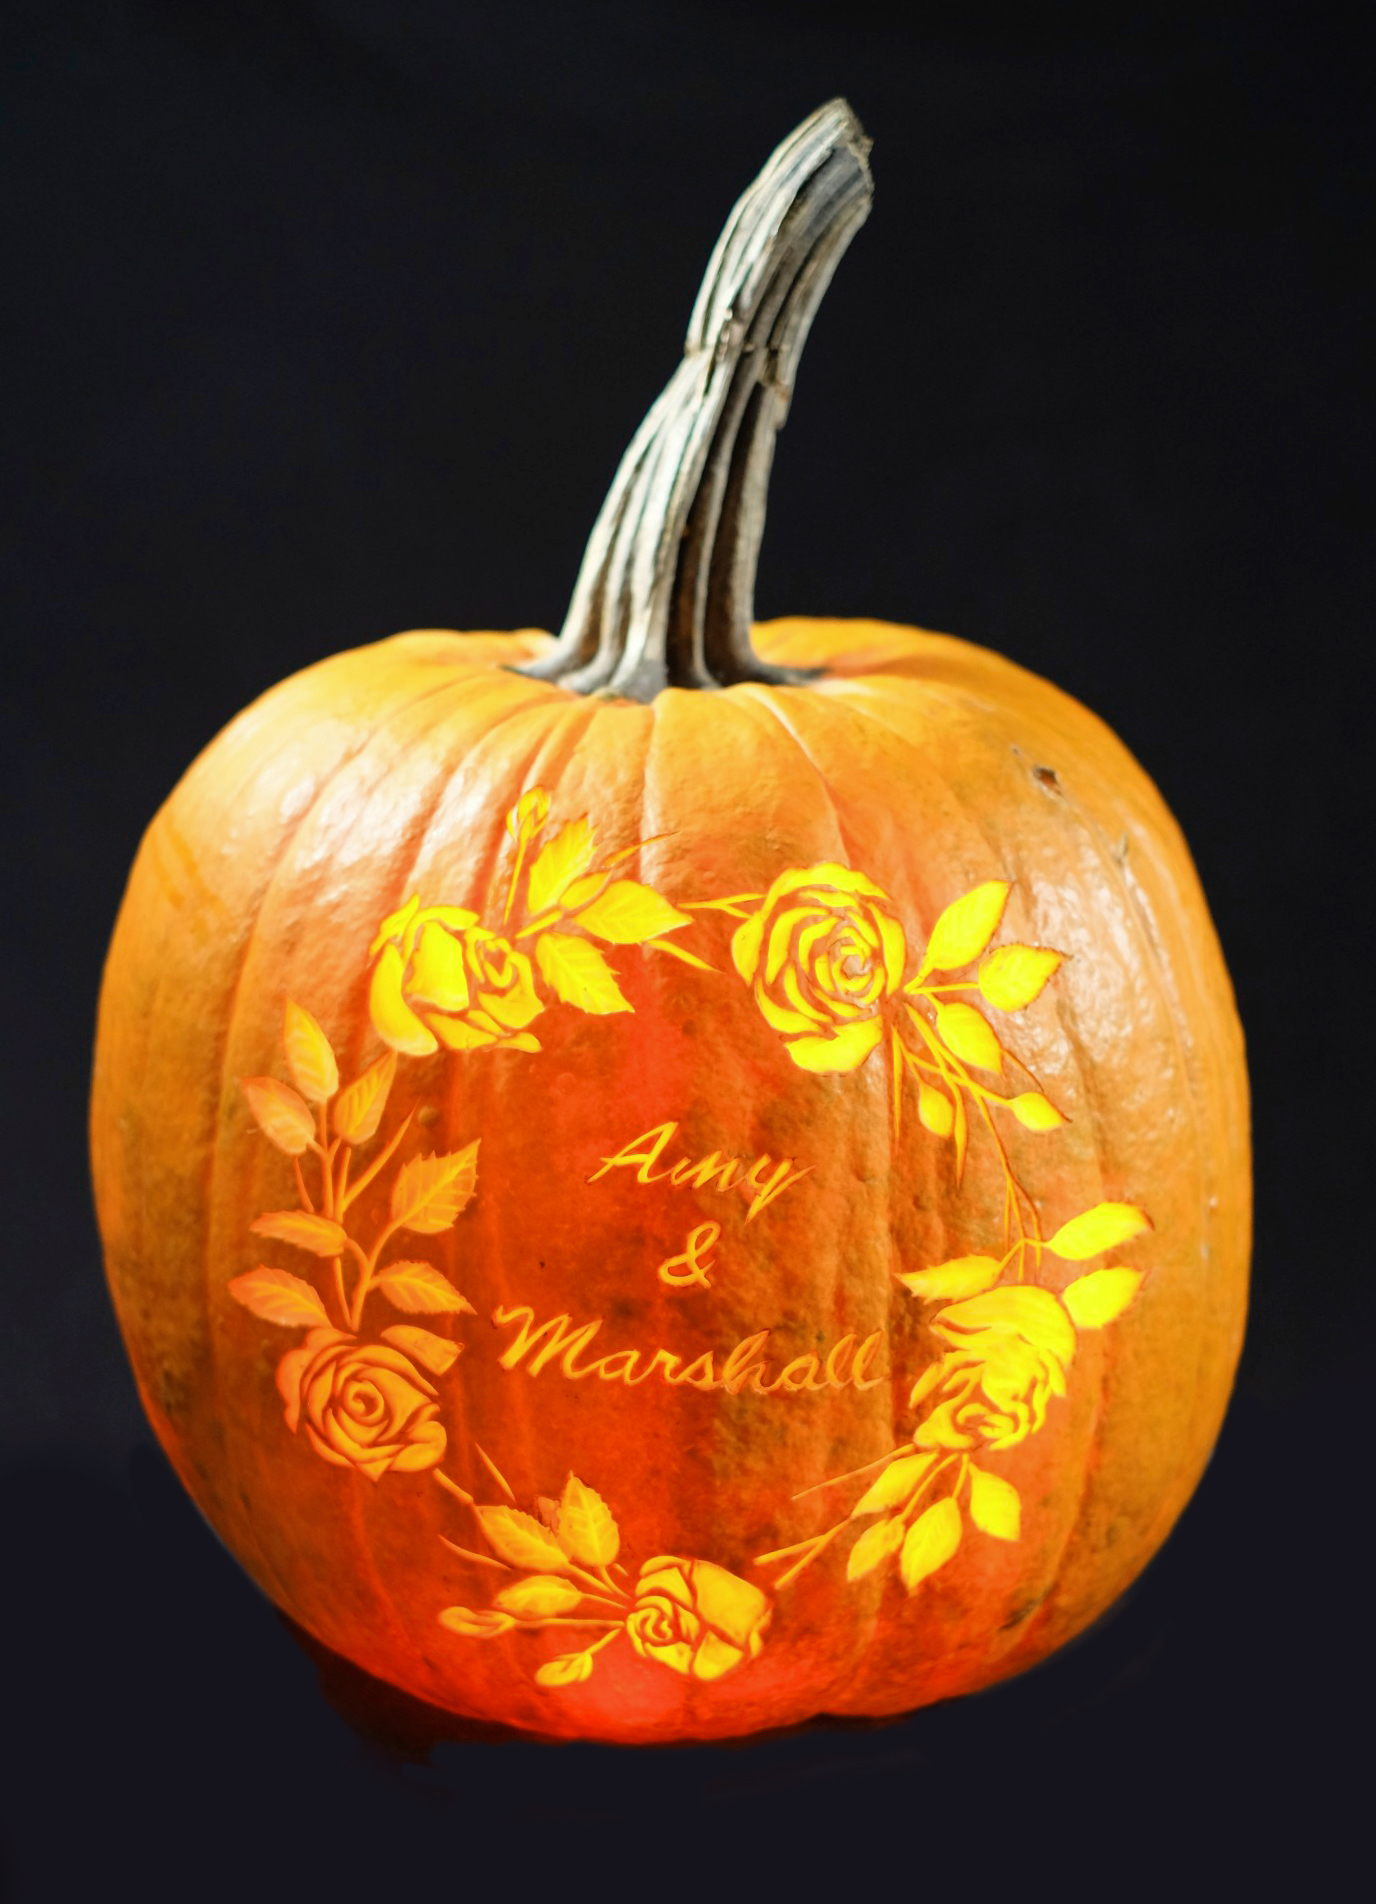 Large pumpkin with names and decorative floral art.